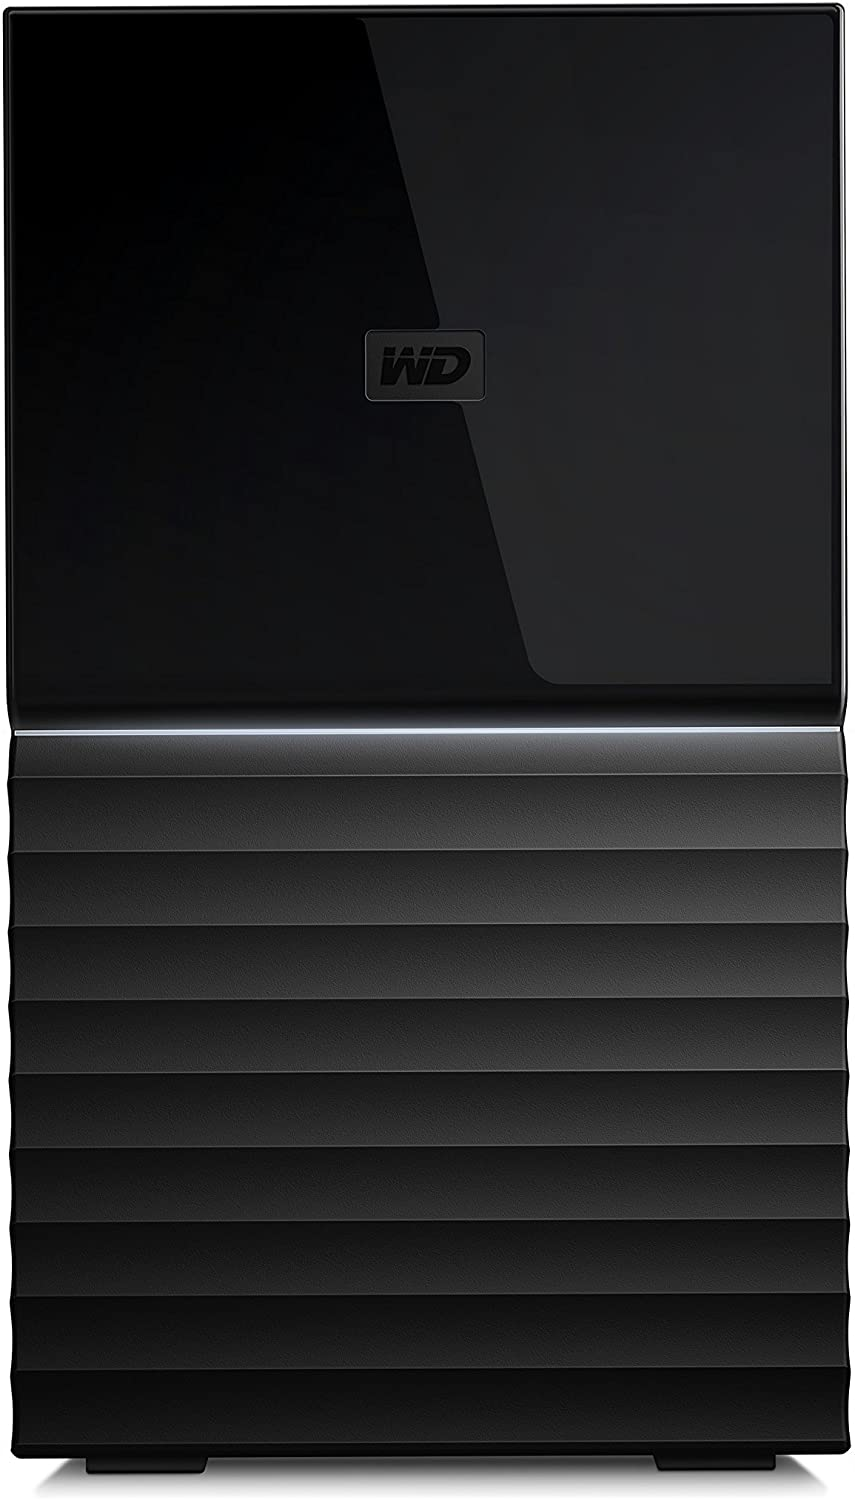 WD 4TB My Book Duo Desktop RAID External Hard Drive - USB 3.1 - WDBFBE0040JBK-NESN